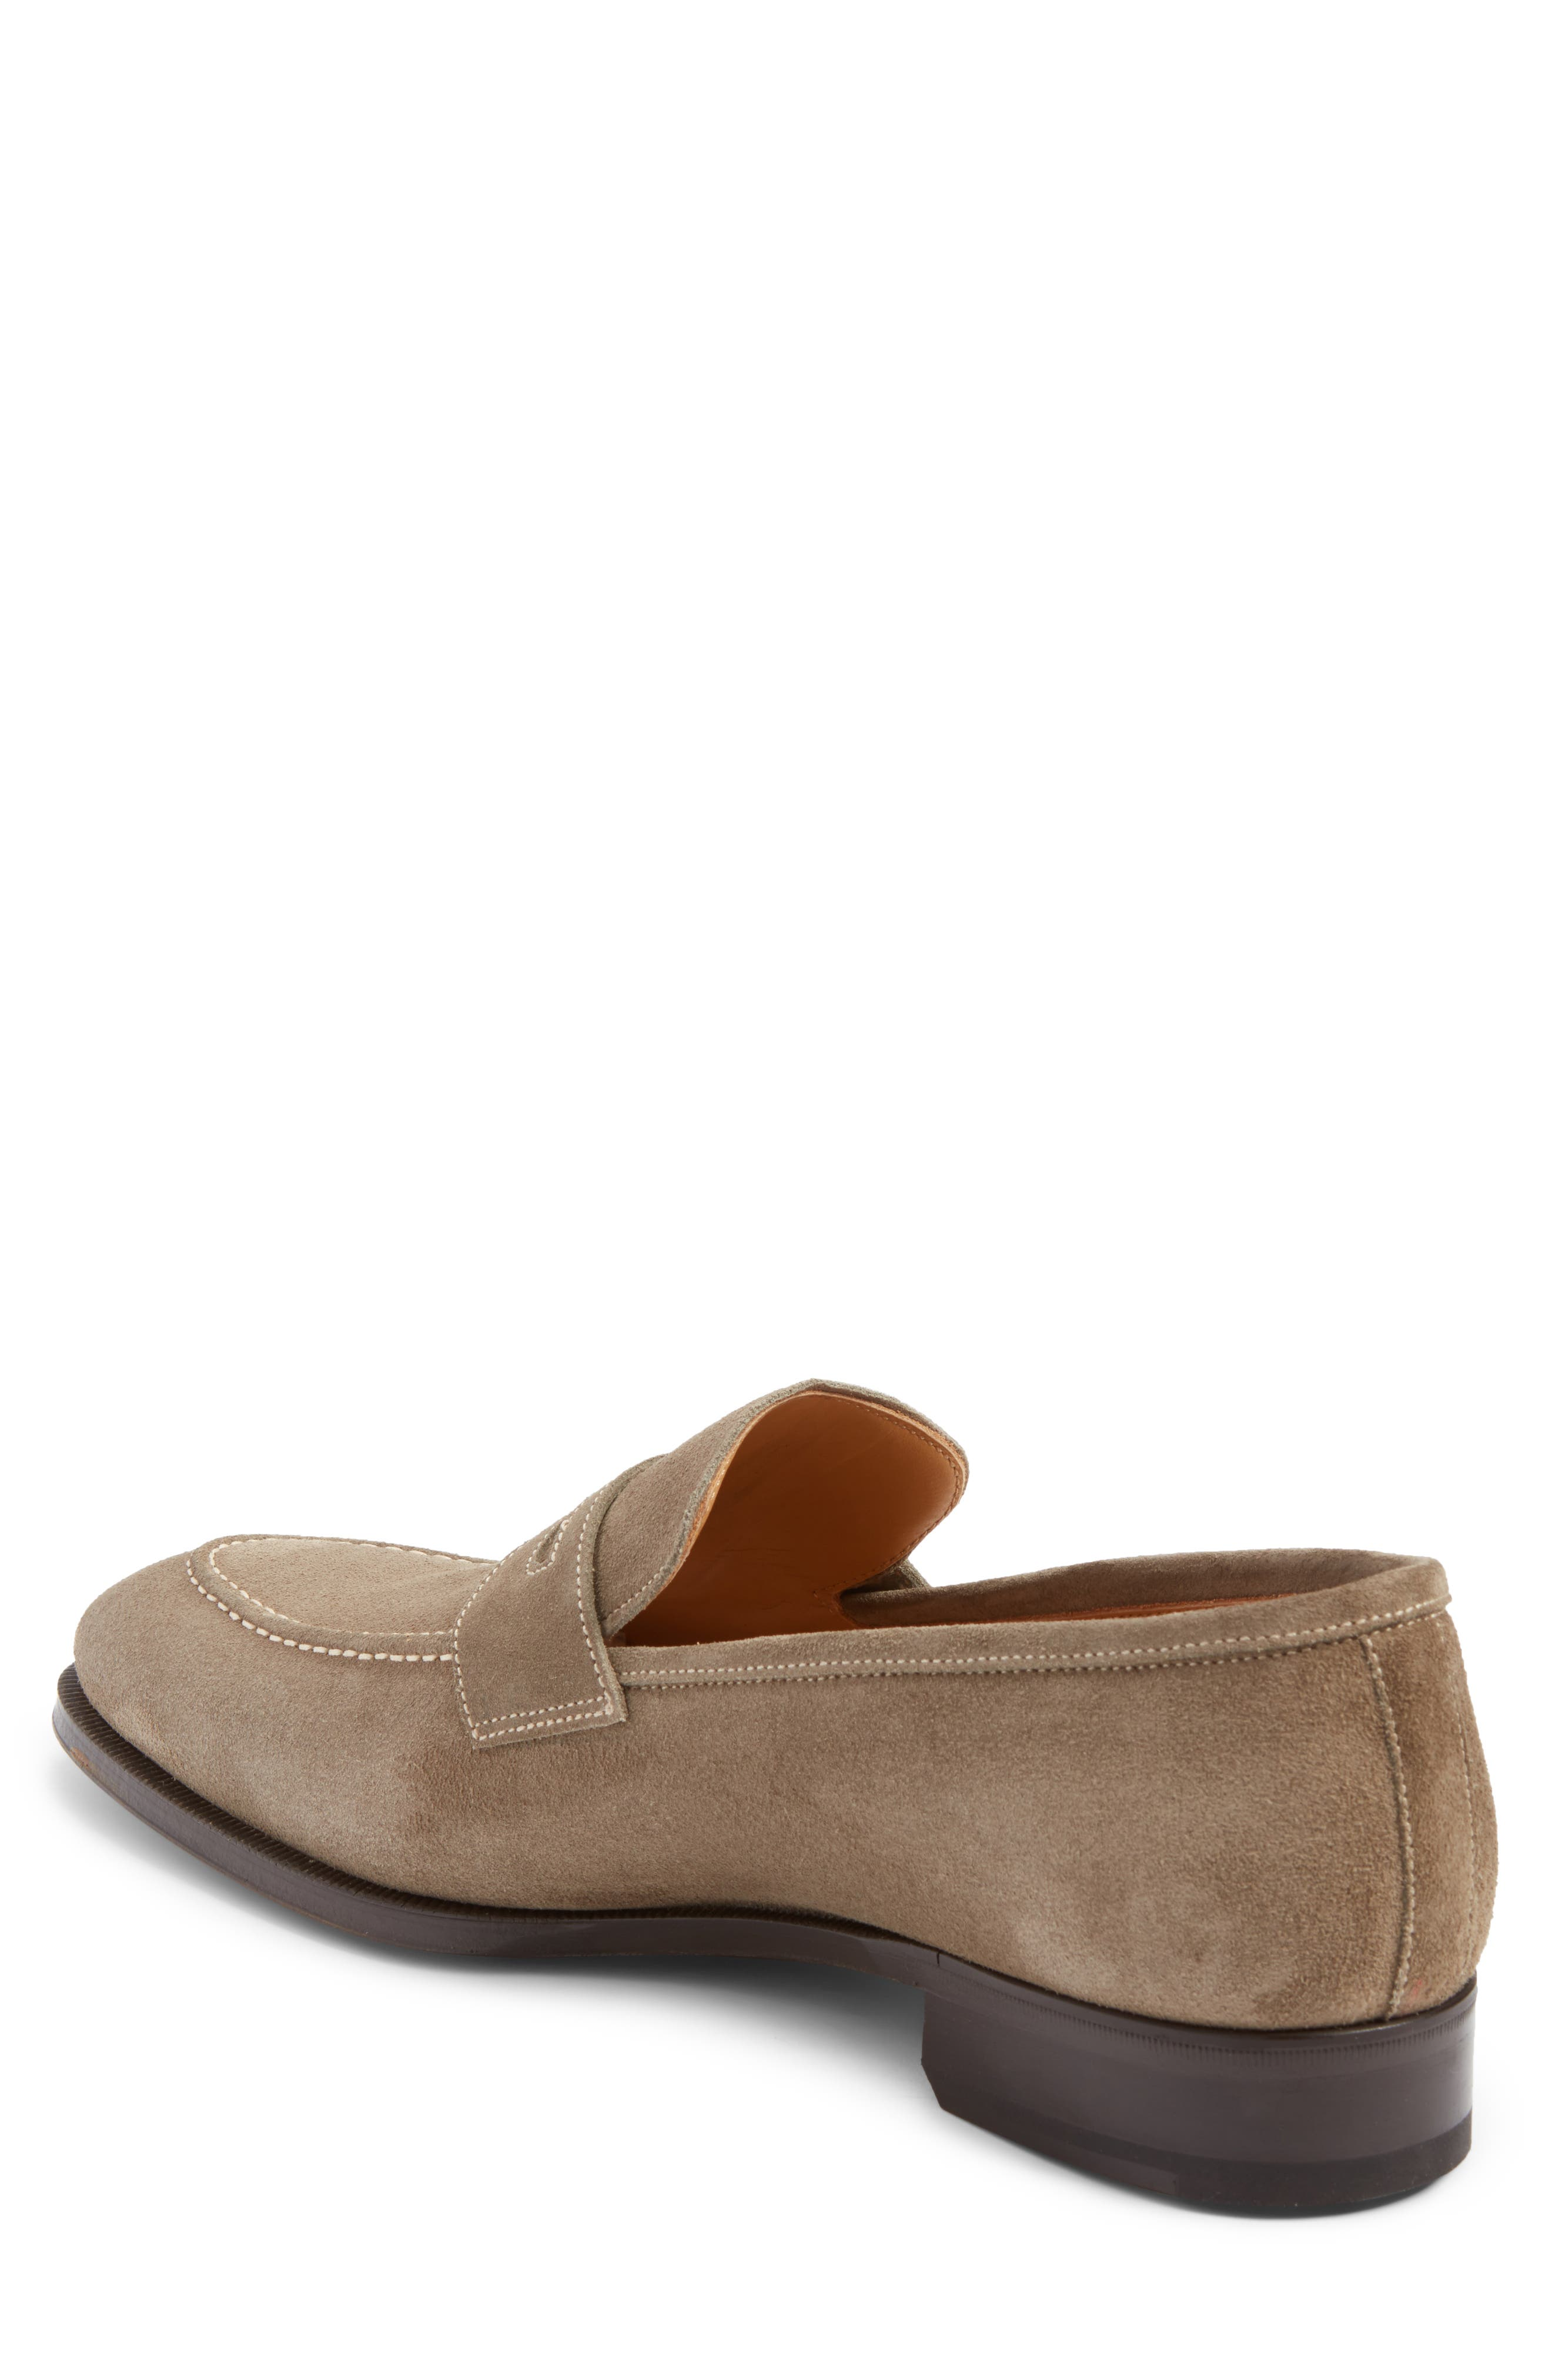 Leather Penny Loafer,                             Alternate thumbnail 10, color,